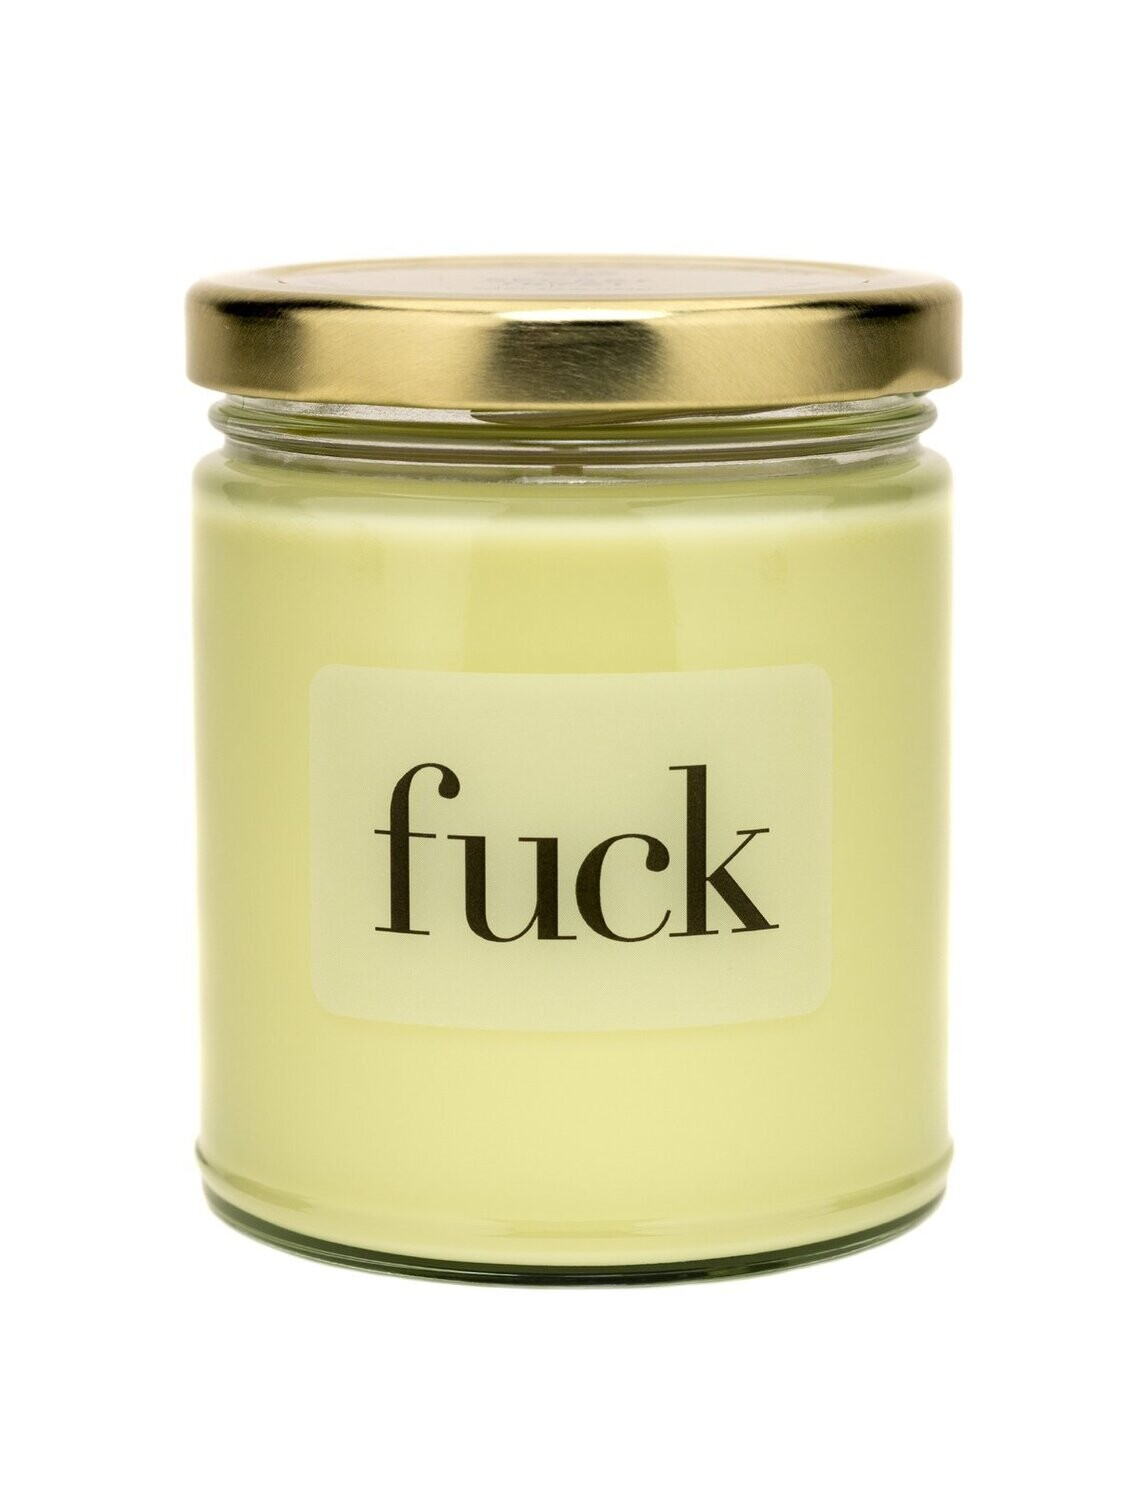 Fuck - FMK Candle